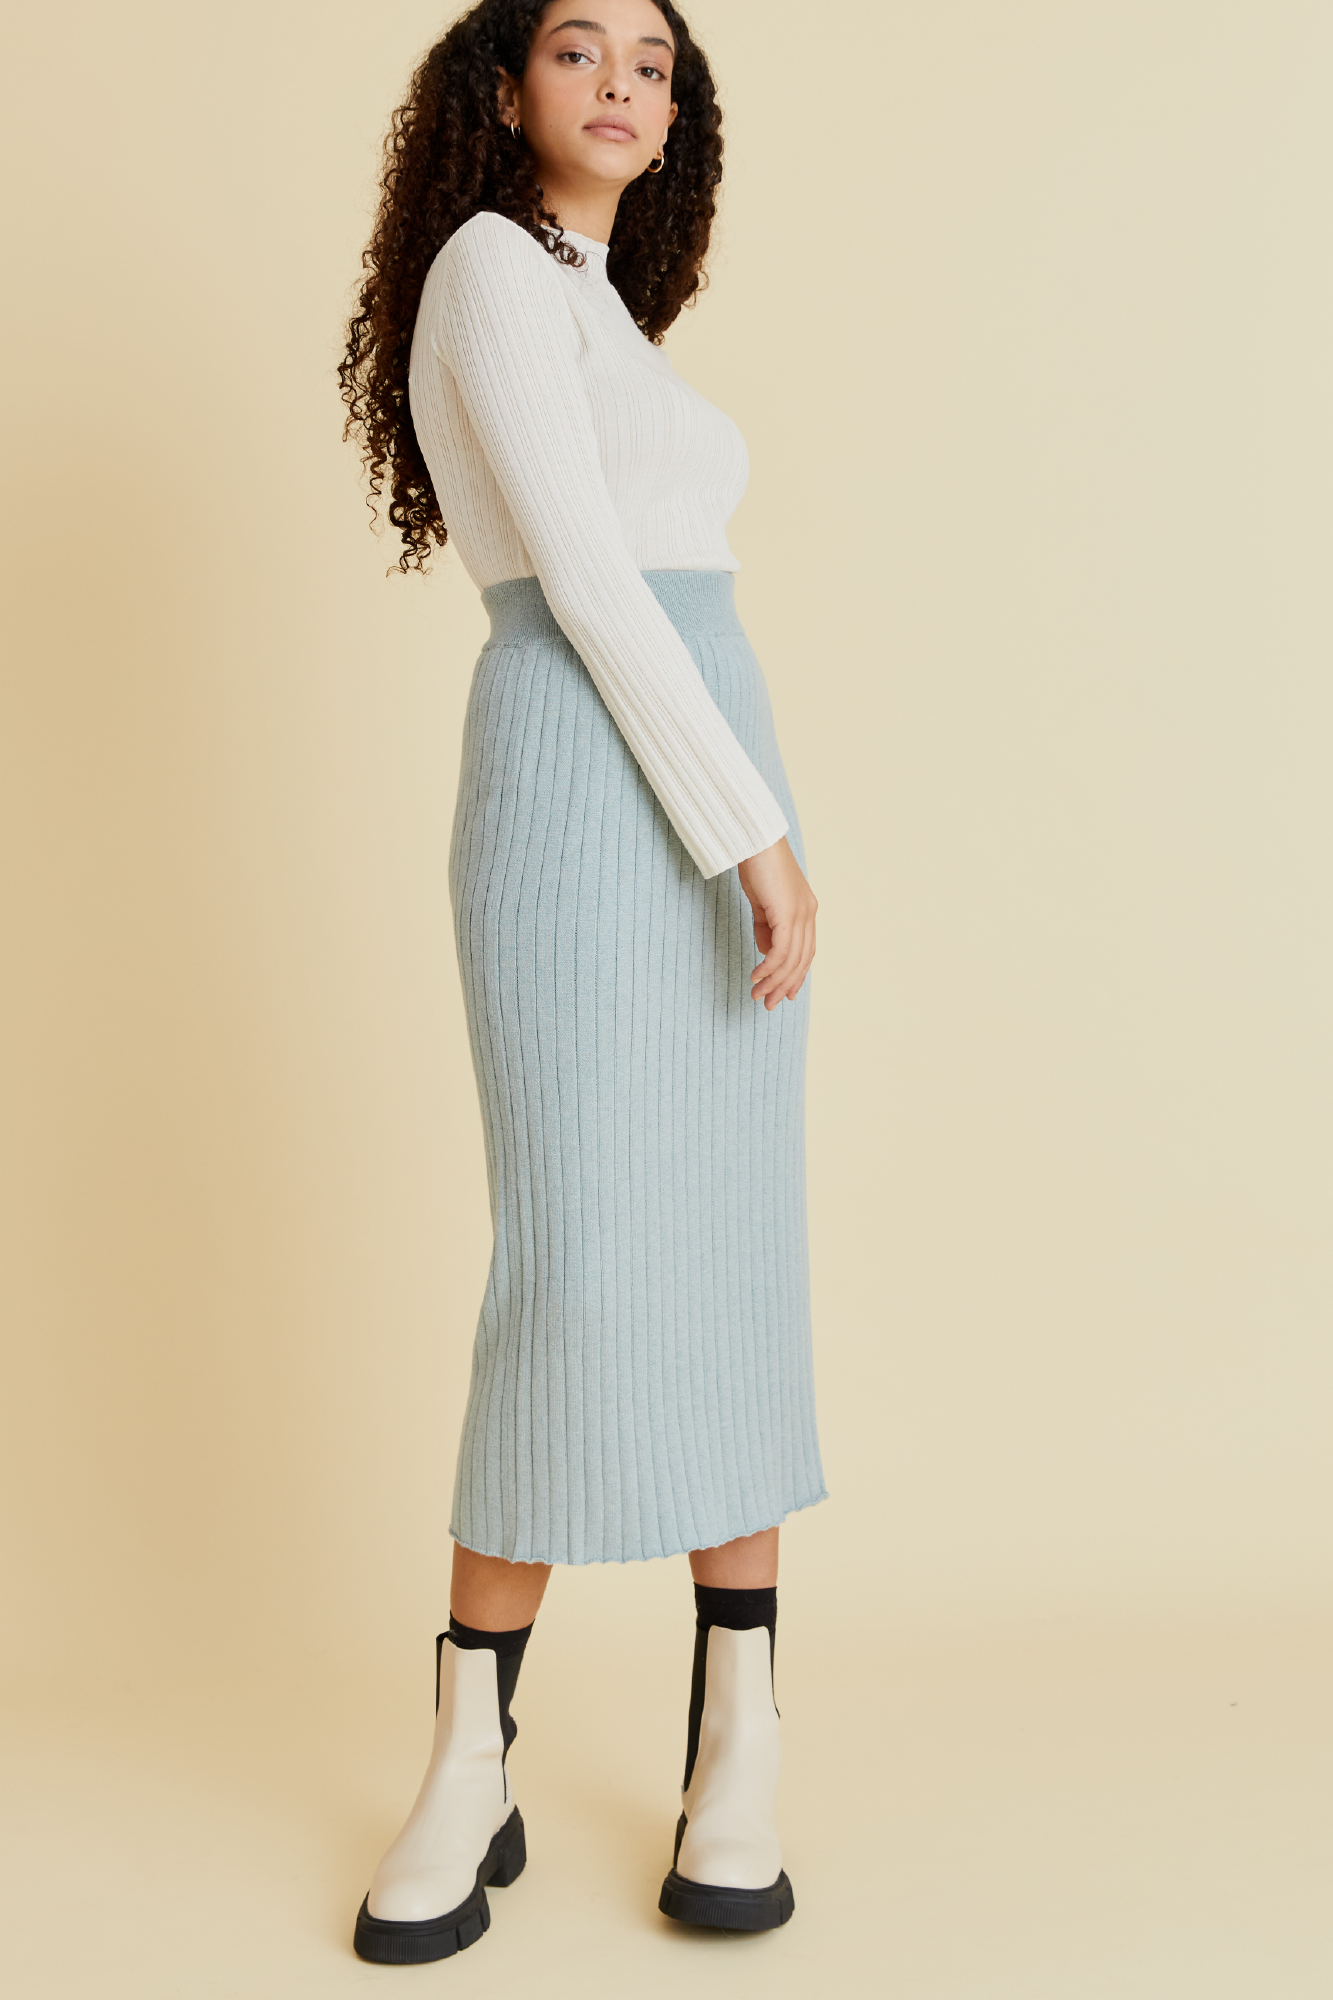 Pin Dropper Knit Skirt in Seafoam - hej hej